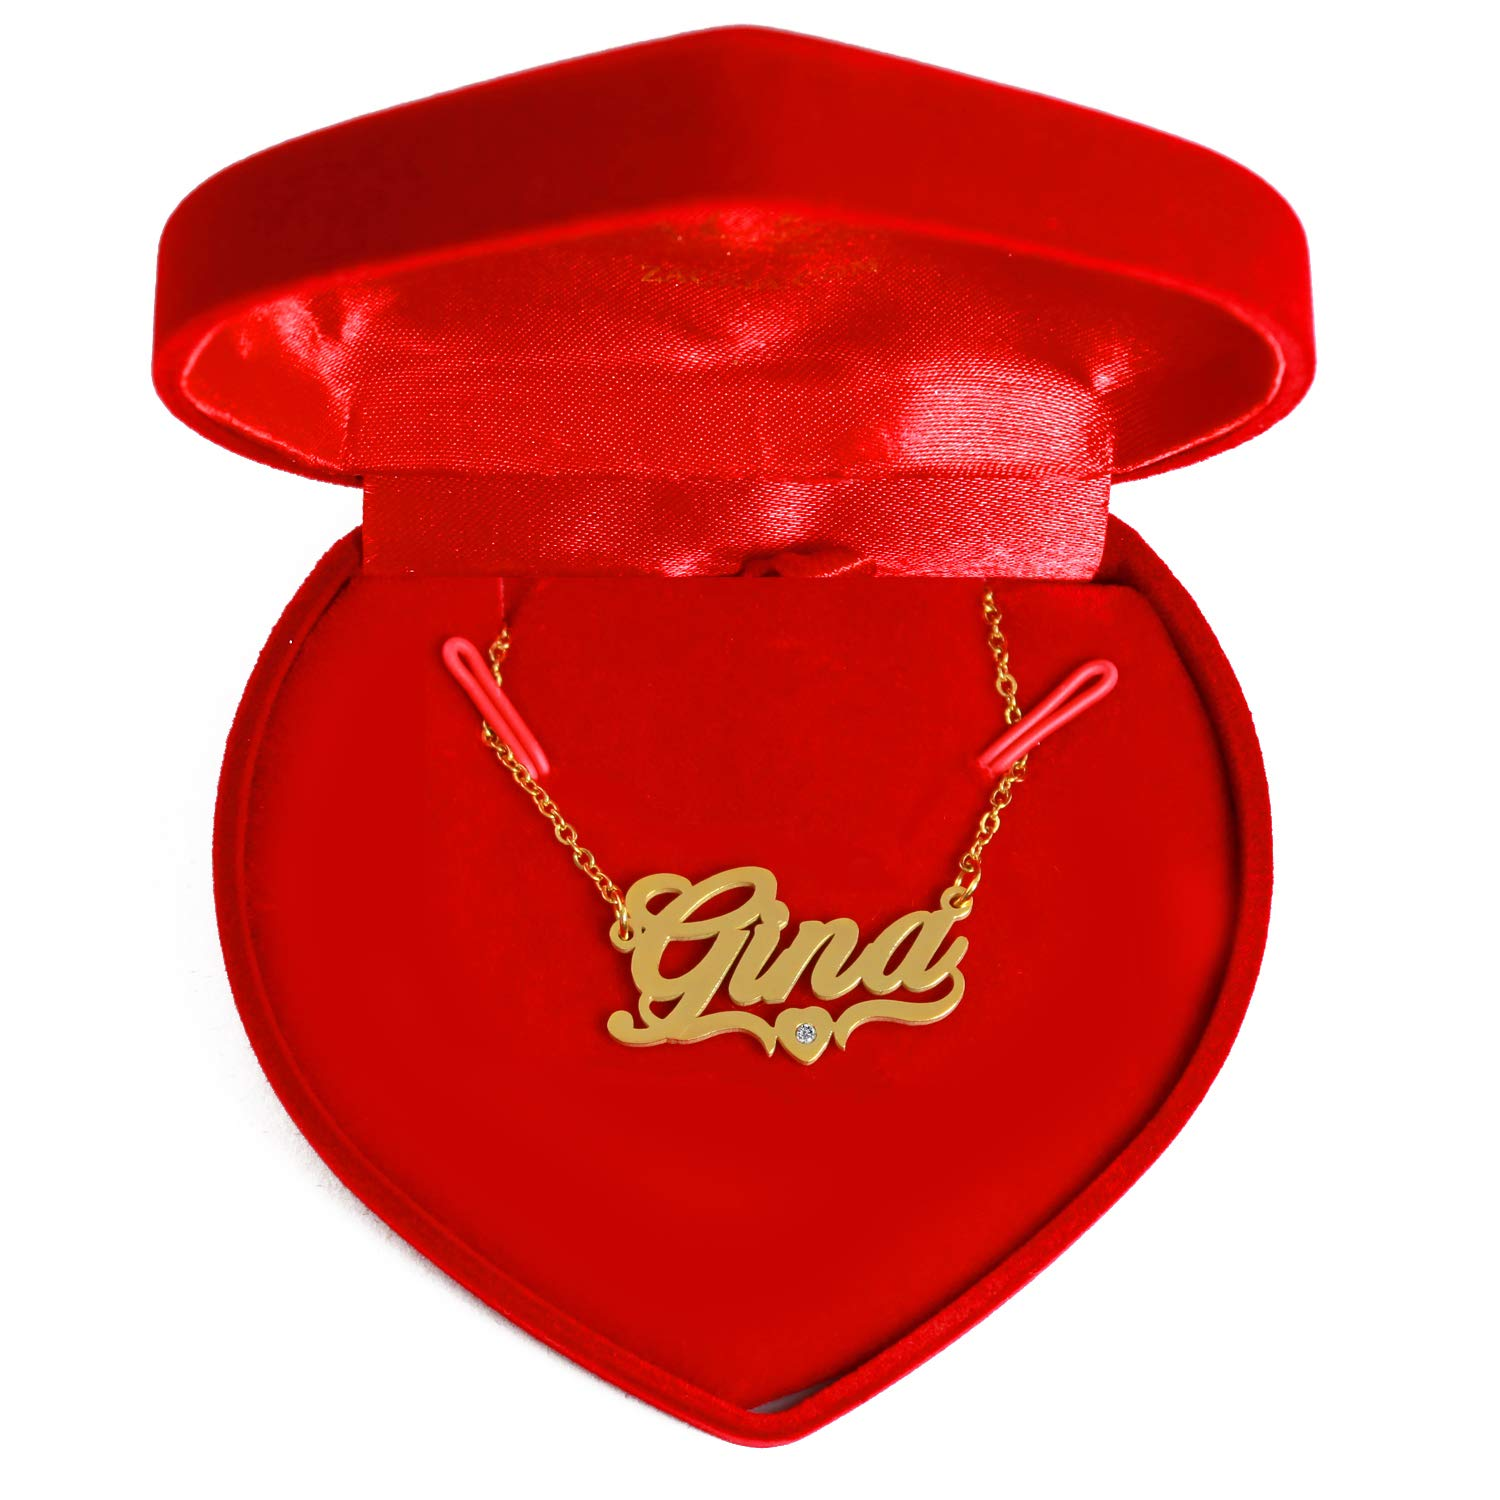 18ct Gold Plated Personalized Custom Name Necklace Kigu GINA Heart Shaped